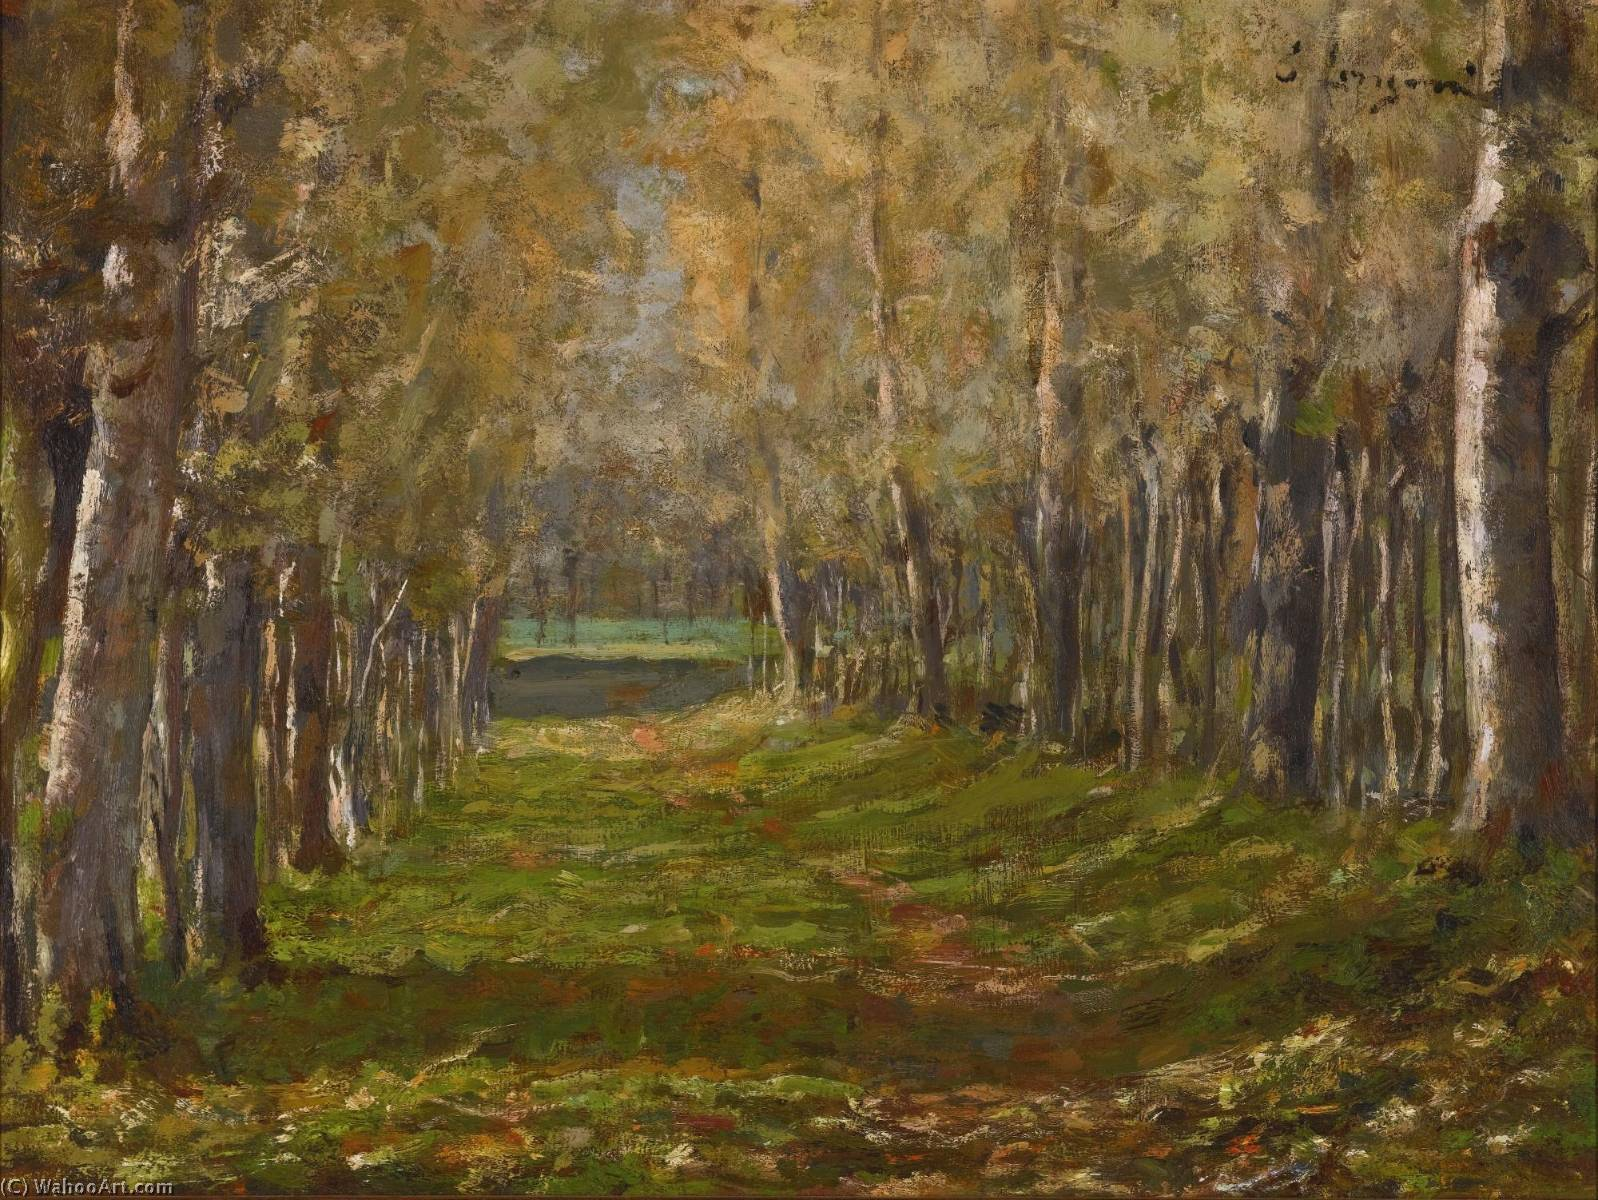 A Forest Path by Emilio Longoni (1859-1932) | Famous Paintings Reproductions | WahooArt.com